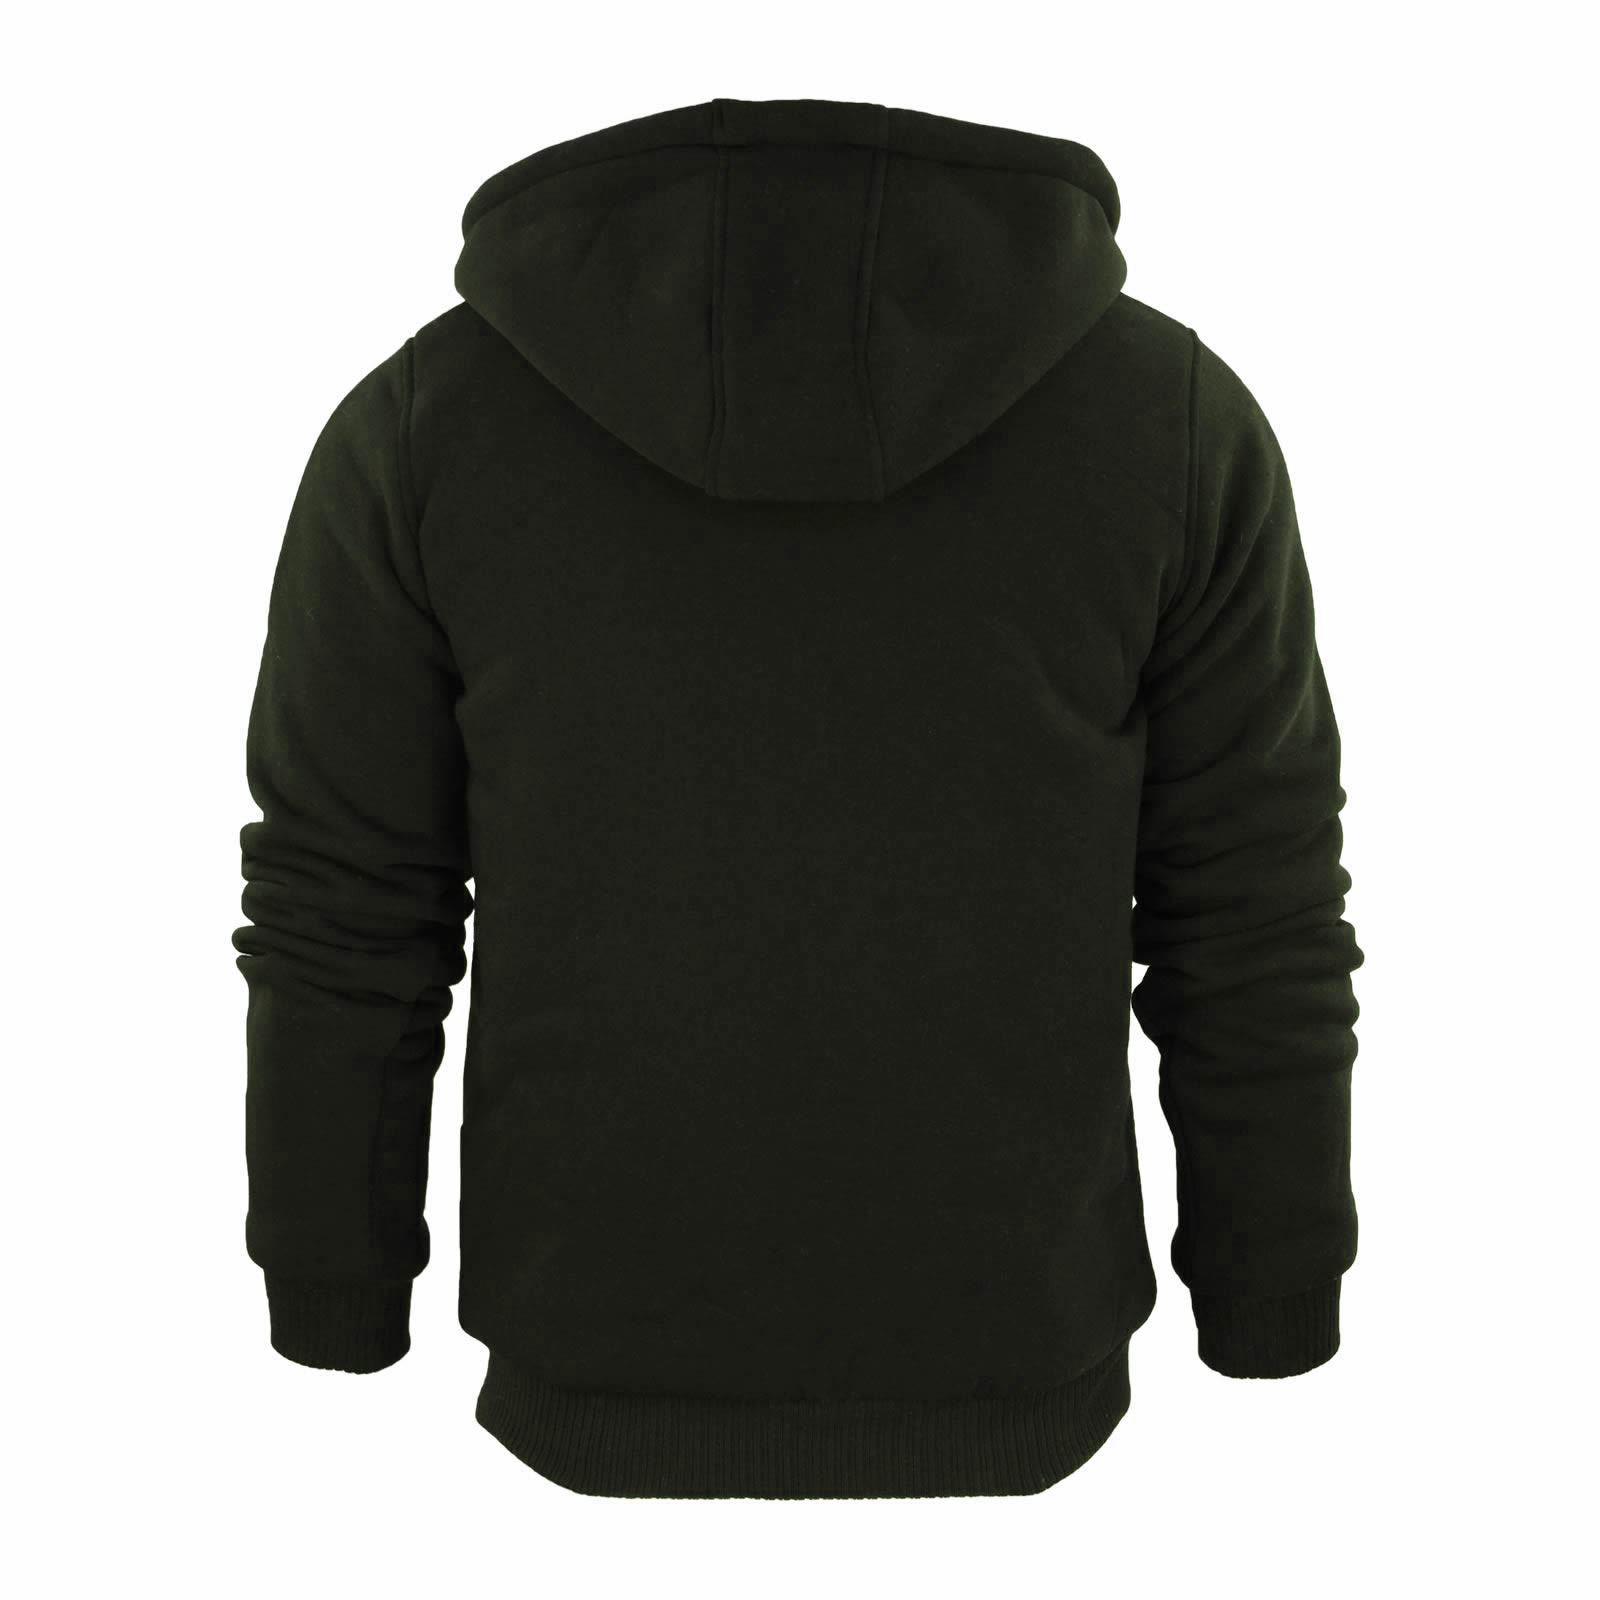 Brave-Soul-Zone-Mens-Hoodie-Sherpa-Fleece-Lined-Zip-Up-Hooded-Sweater thumbnail 9